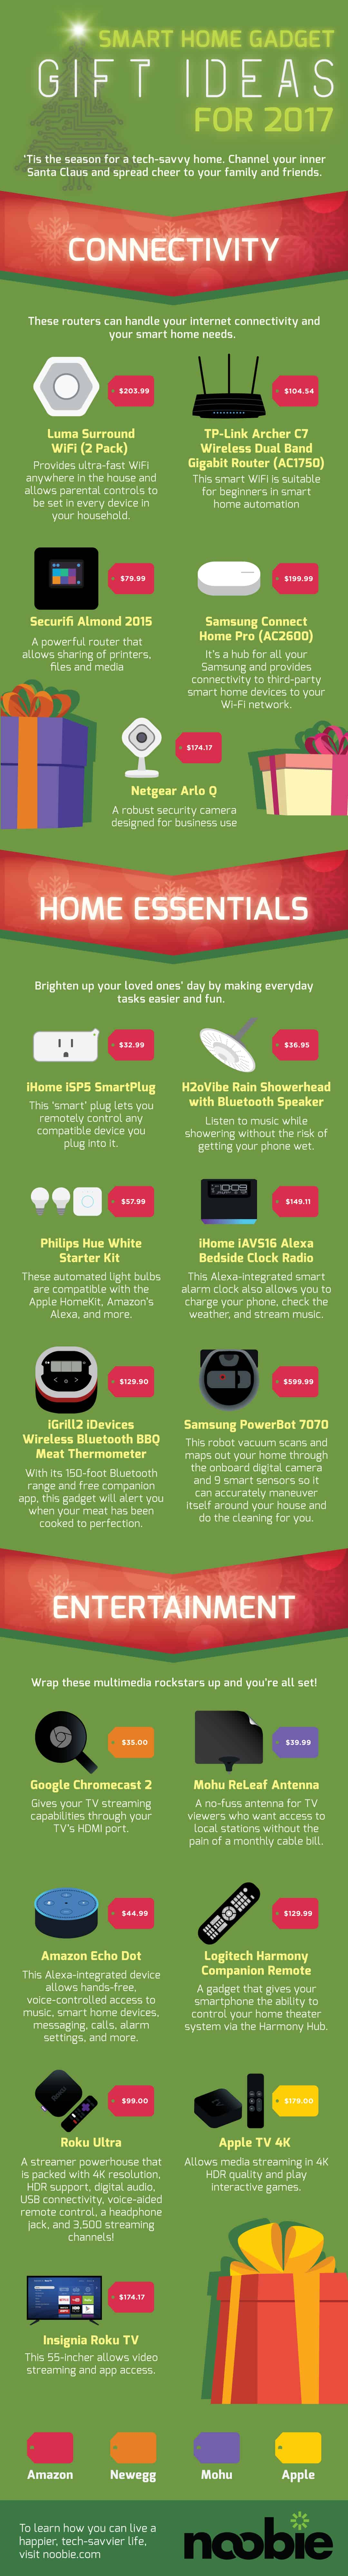 Smart Home Gadgets Perfect As Gifts For Holiday Season | home gadgets